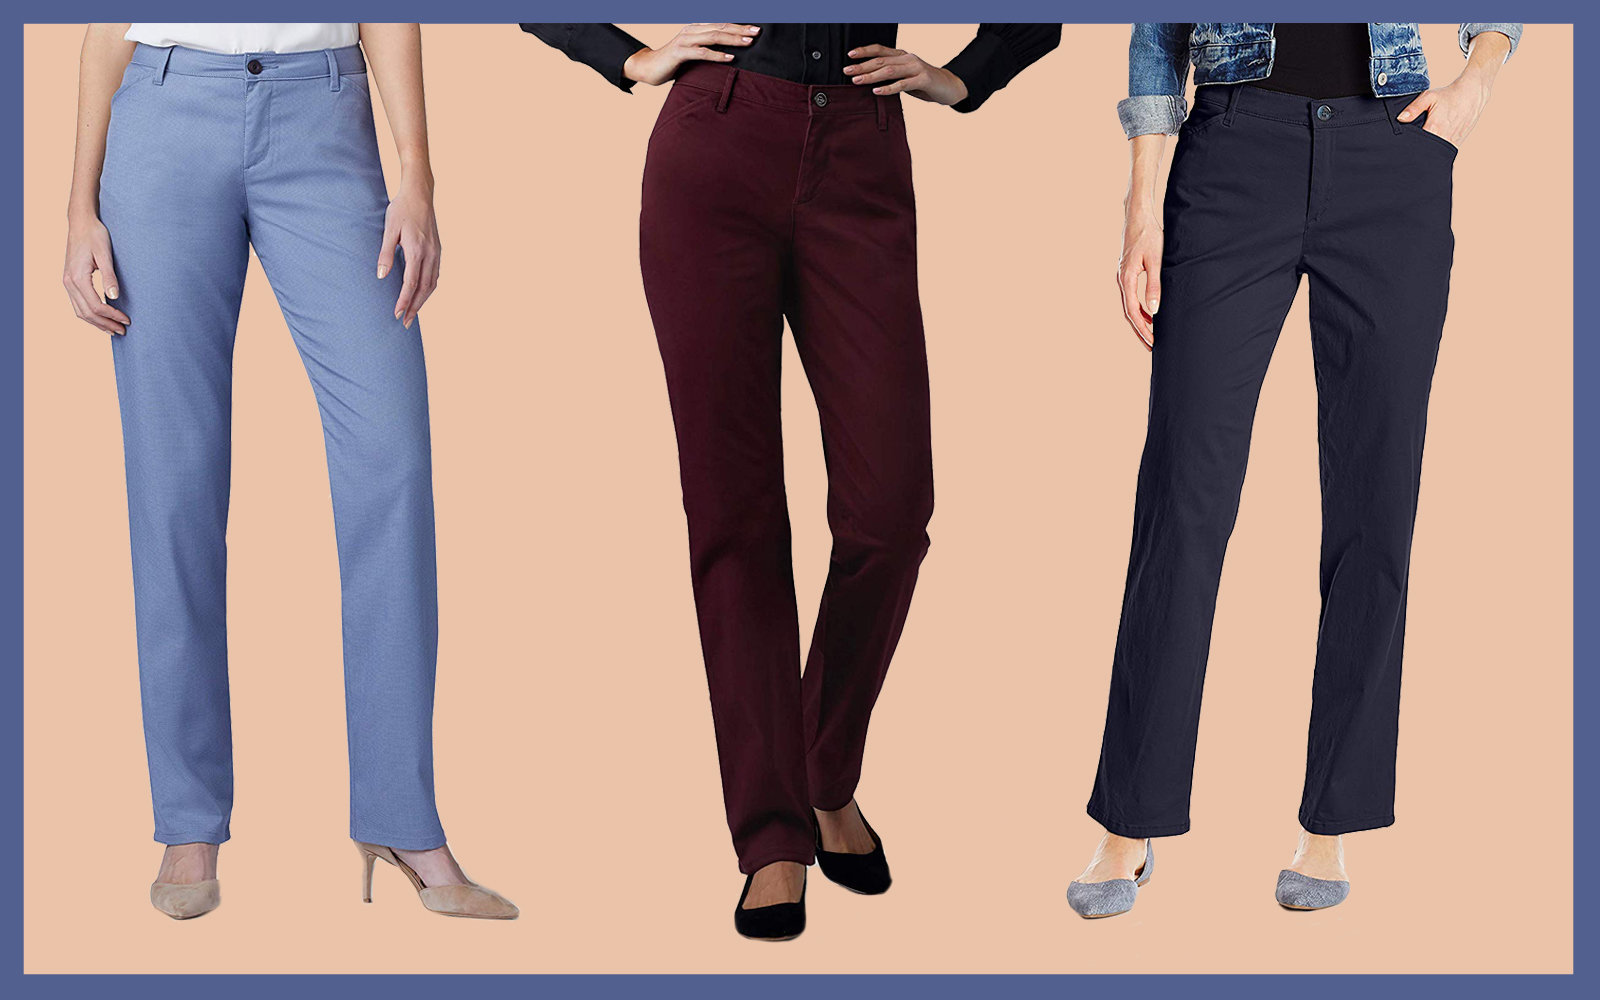 LEE Women's Relaxed Fit All Day Straight Leg Pant Collage Tout